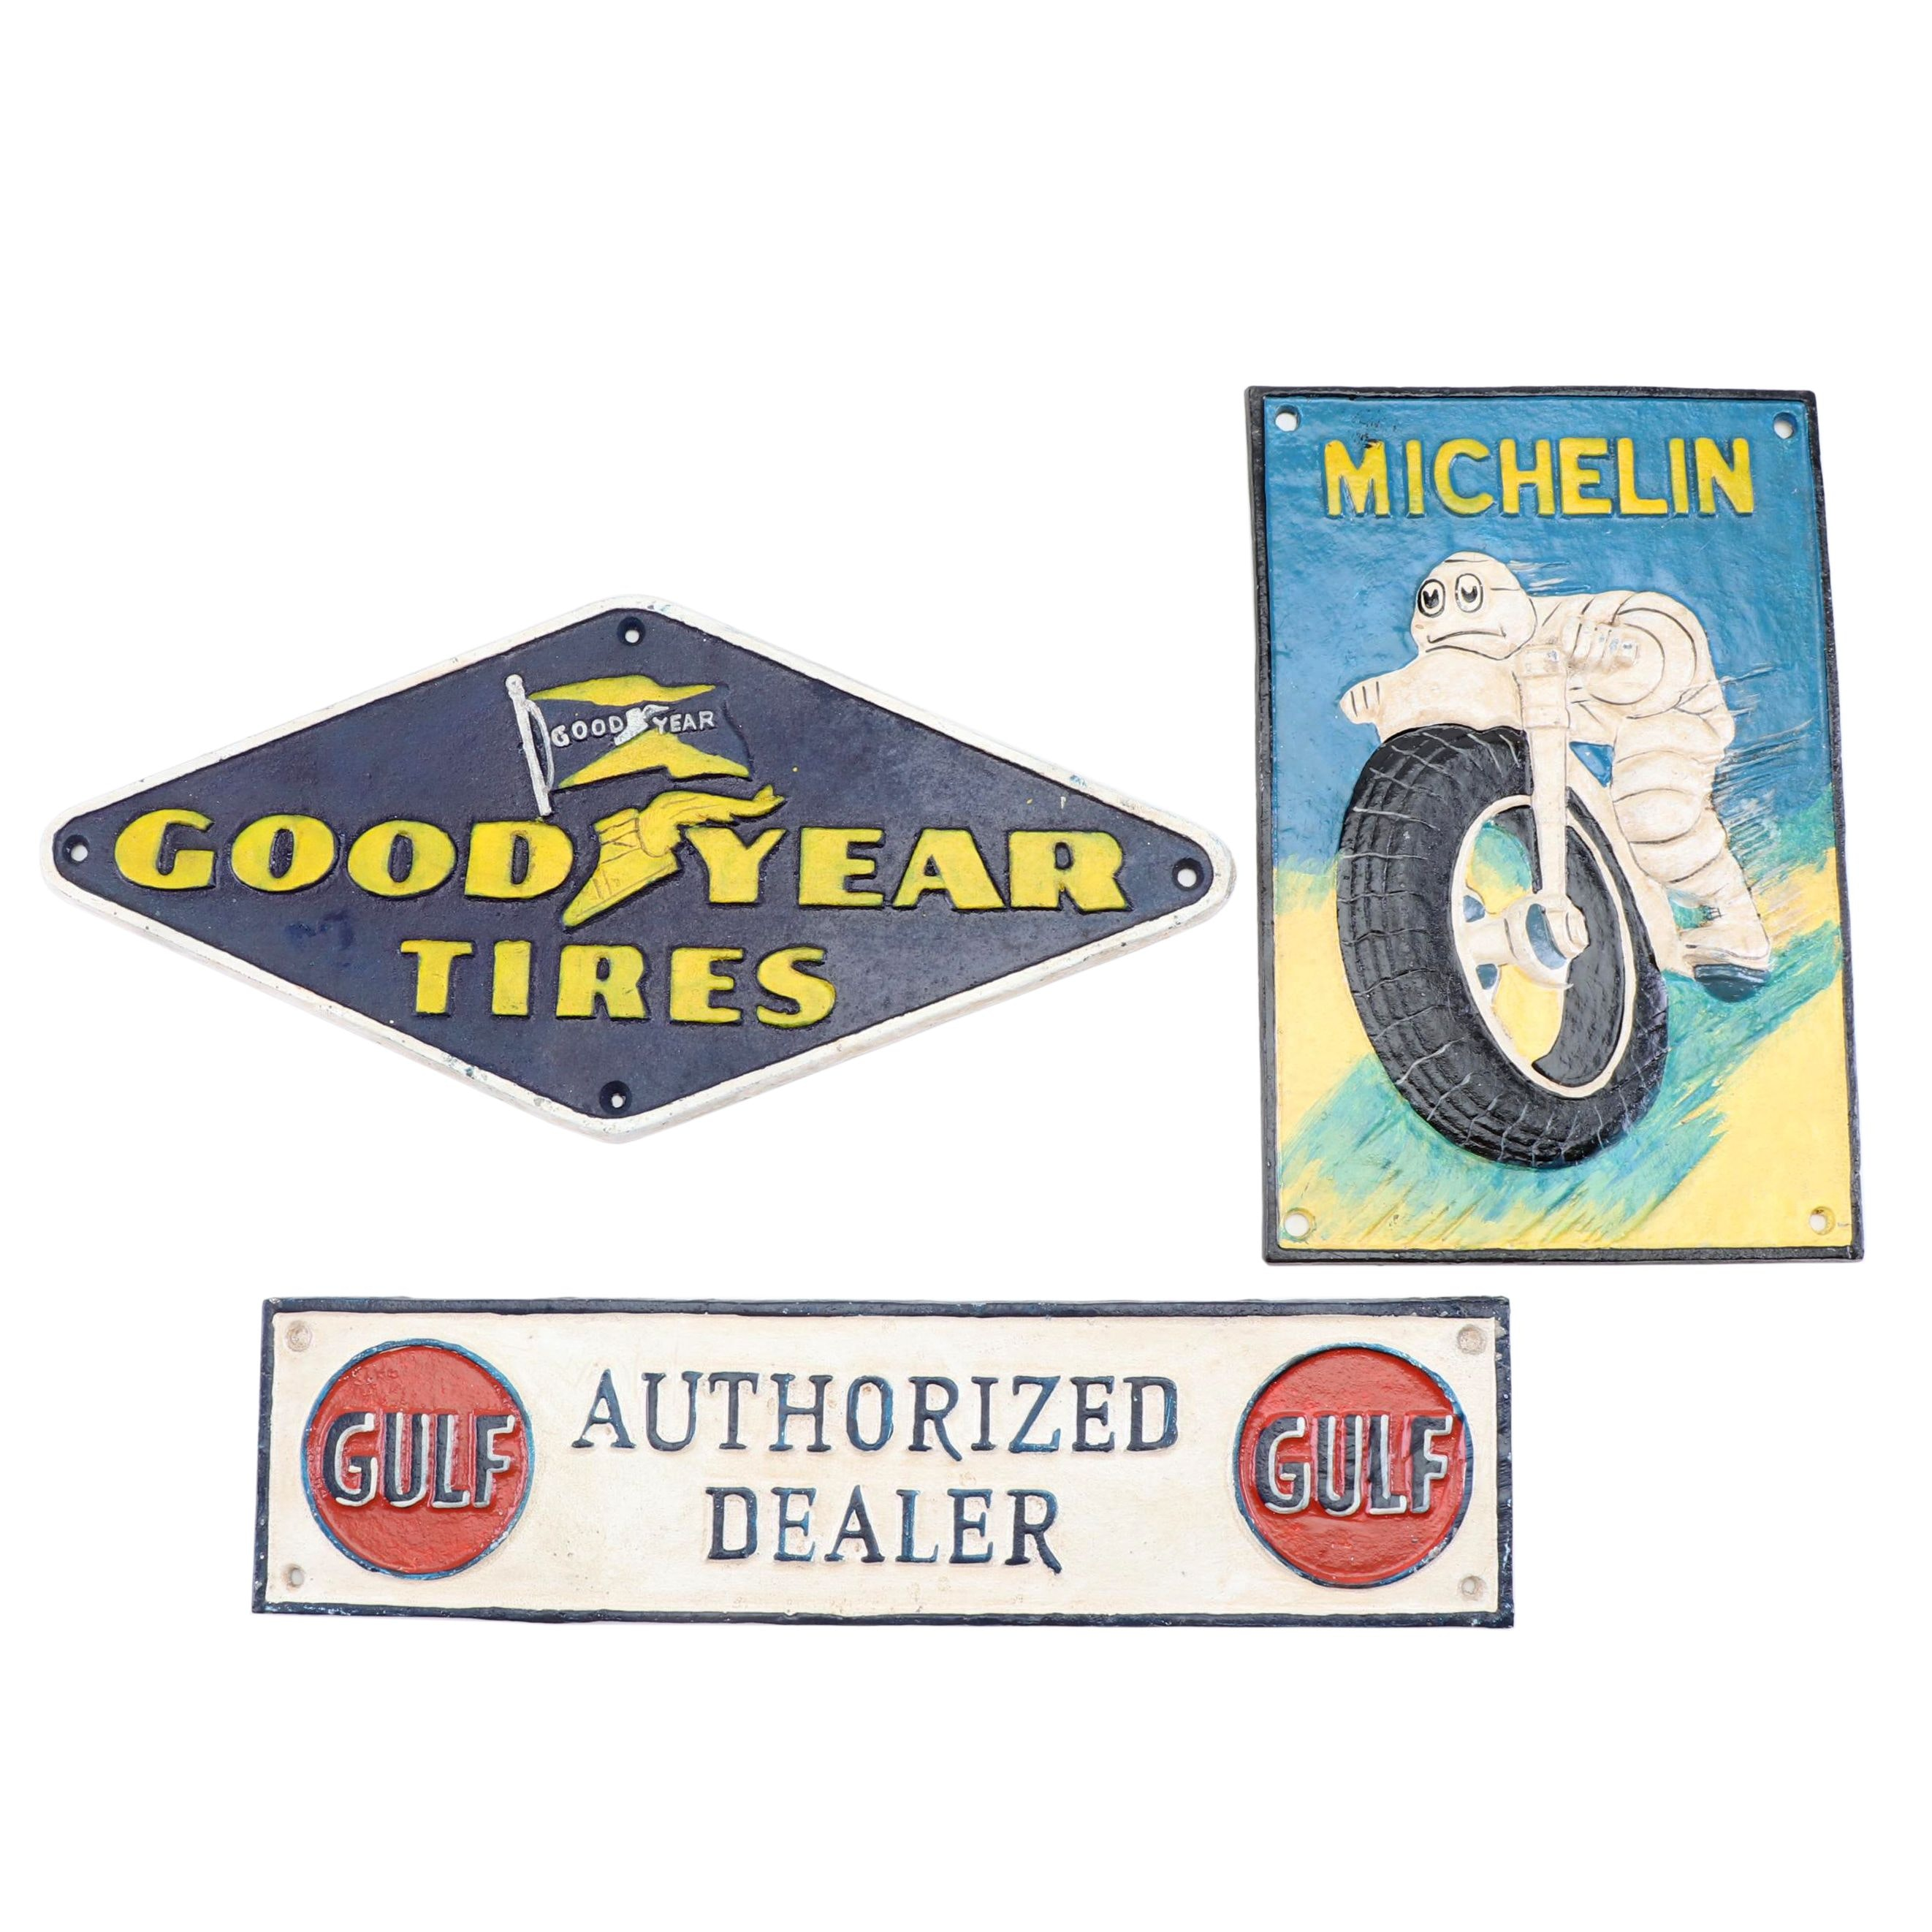 Cast Iron Reproduction Signs including Michelin and Good Year Tires